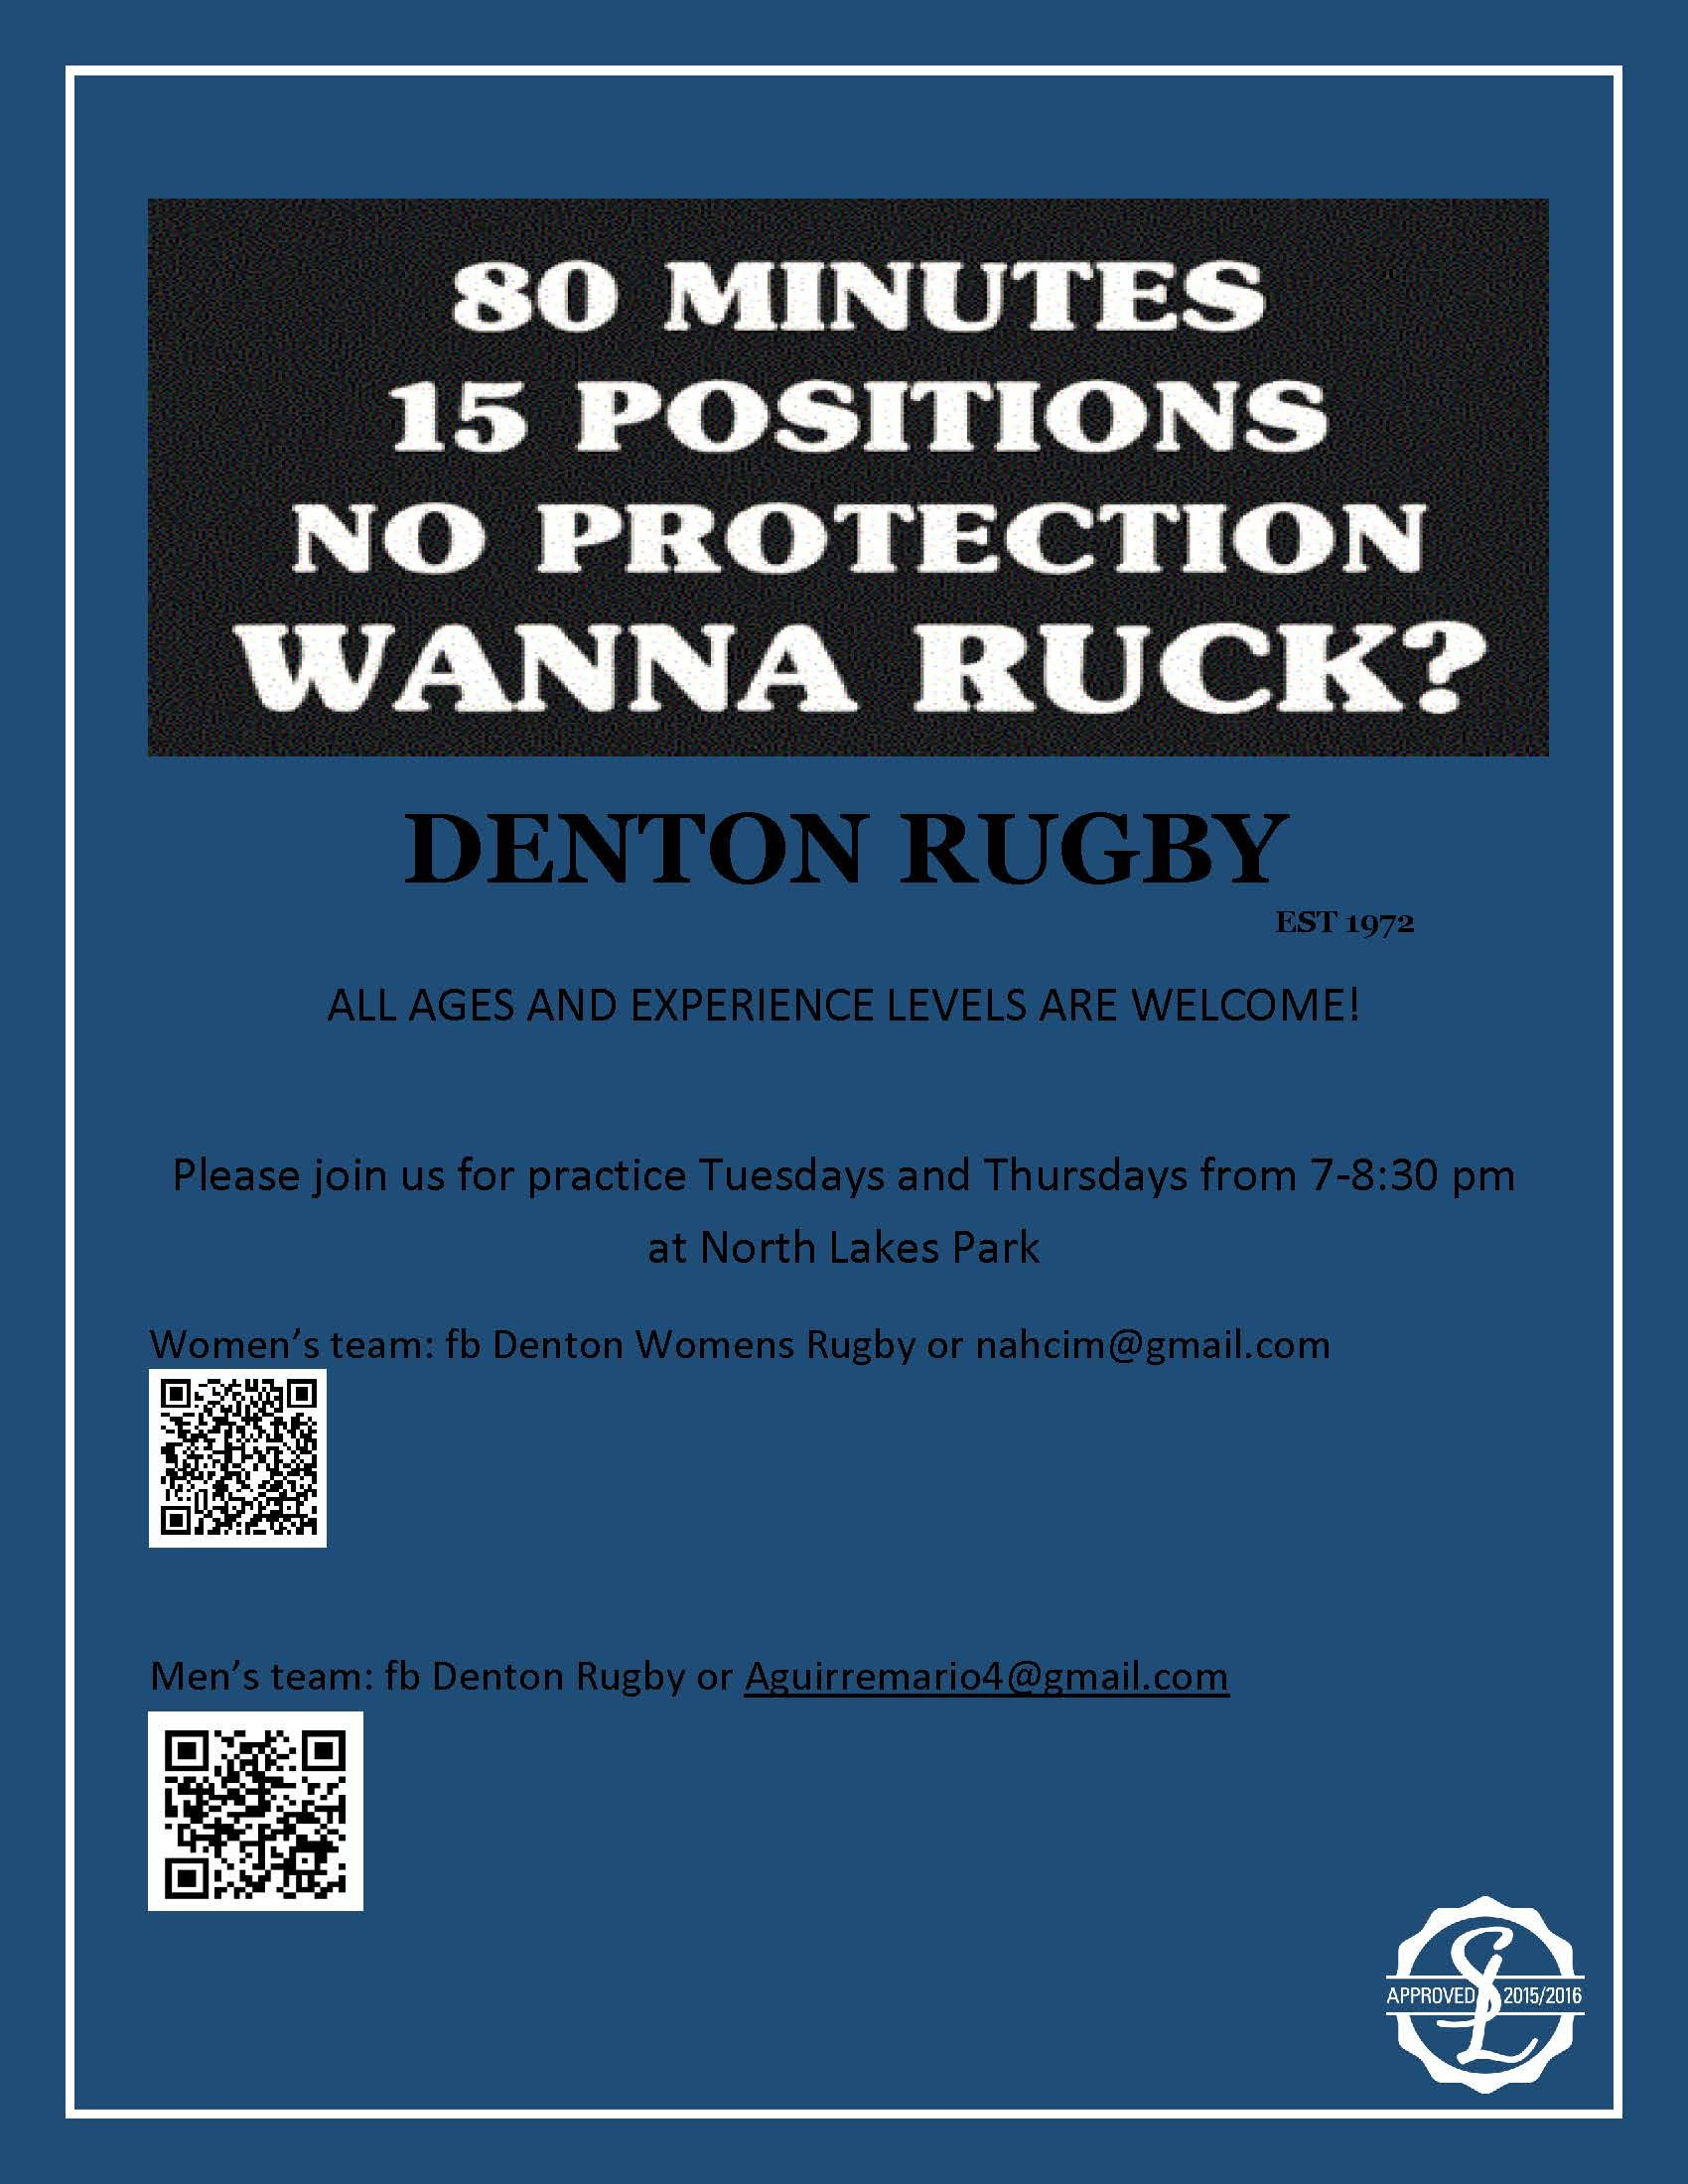 Blue apron recruiting - Rugby Recruitment Flyer